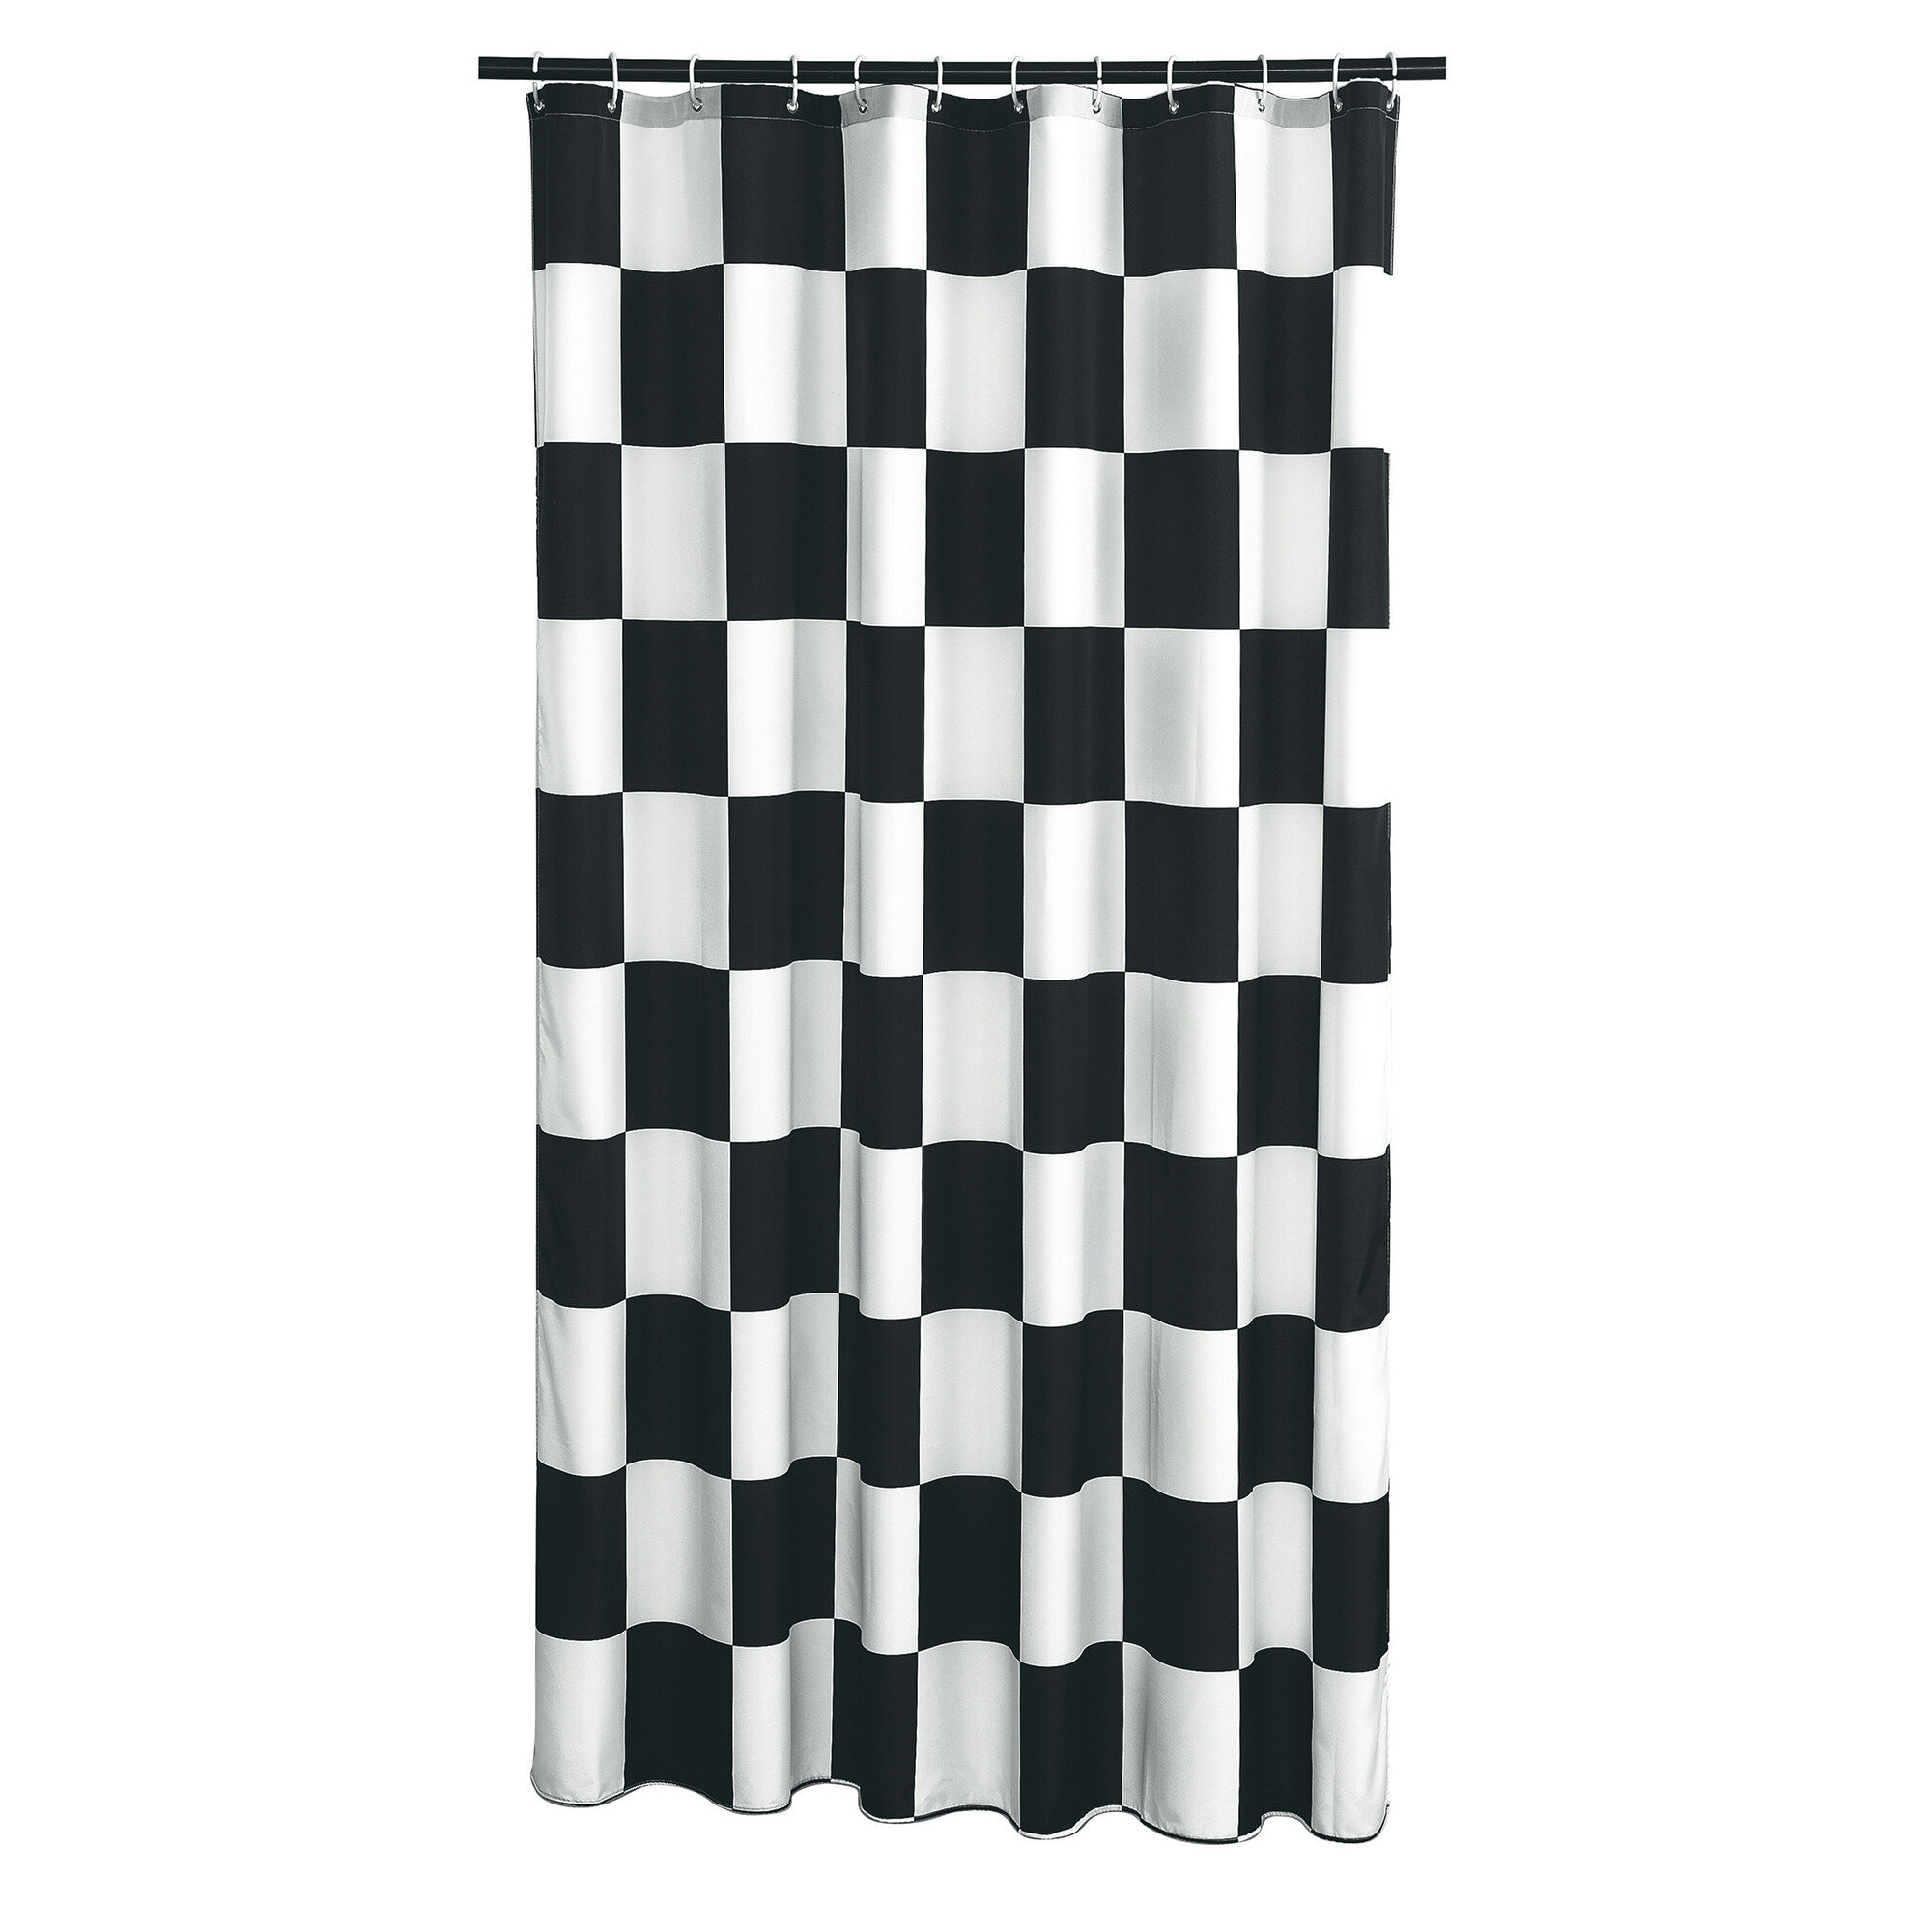 Ebern Designs Dripping Springs Checkered Flag Shower Curtain